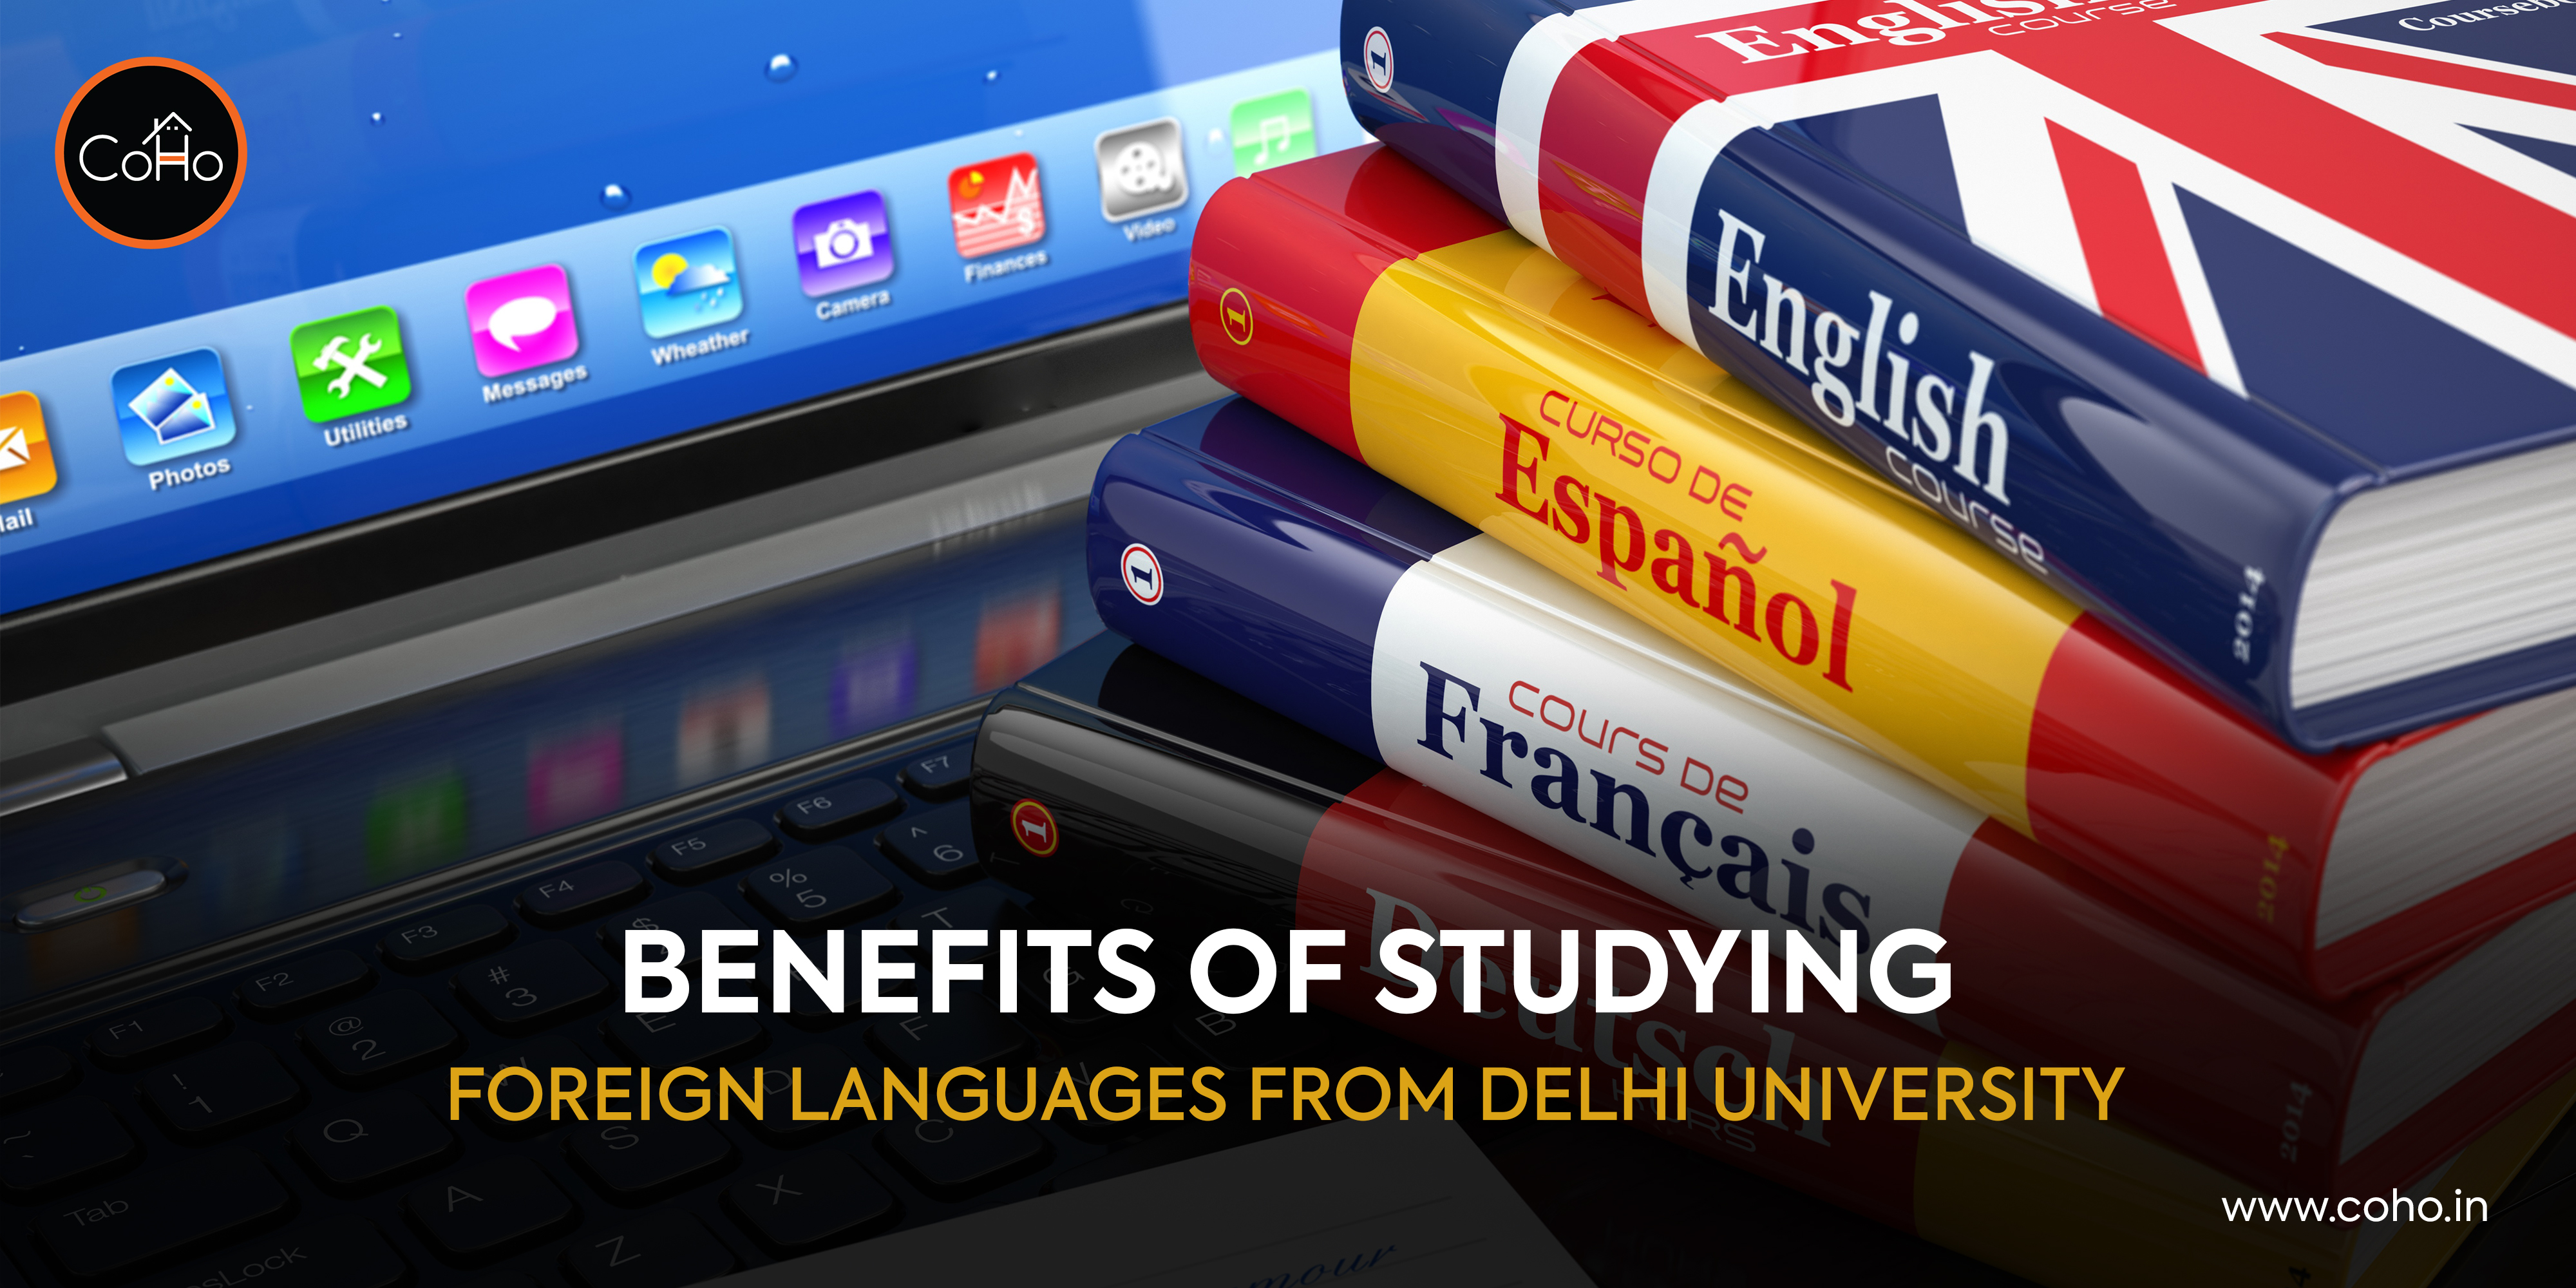 Benefits of studying foreign languages from DU